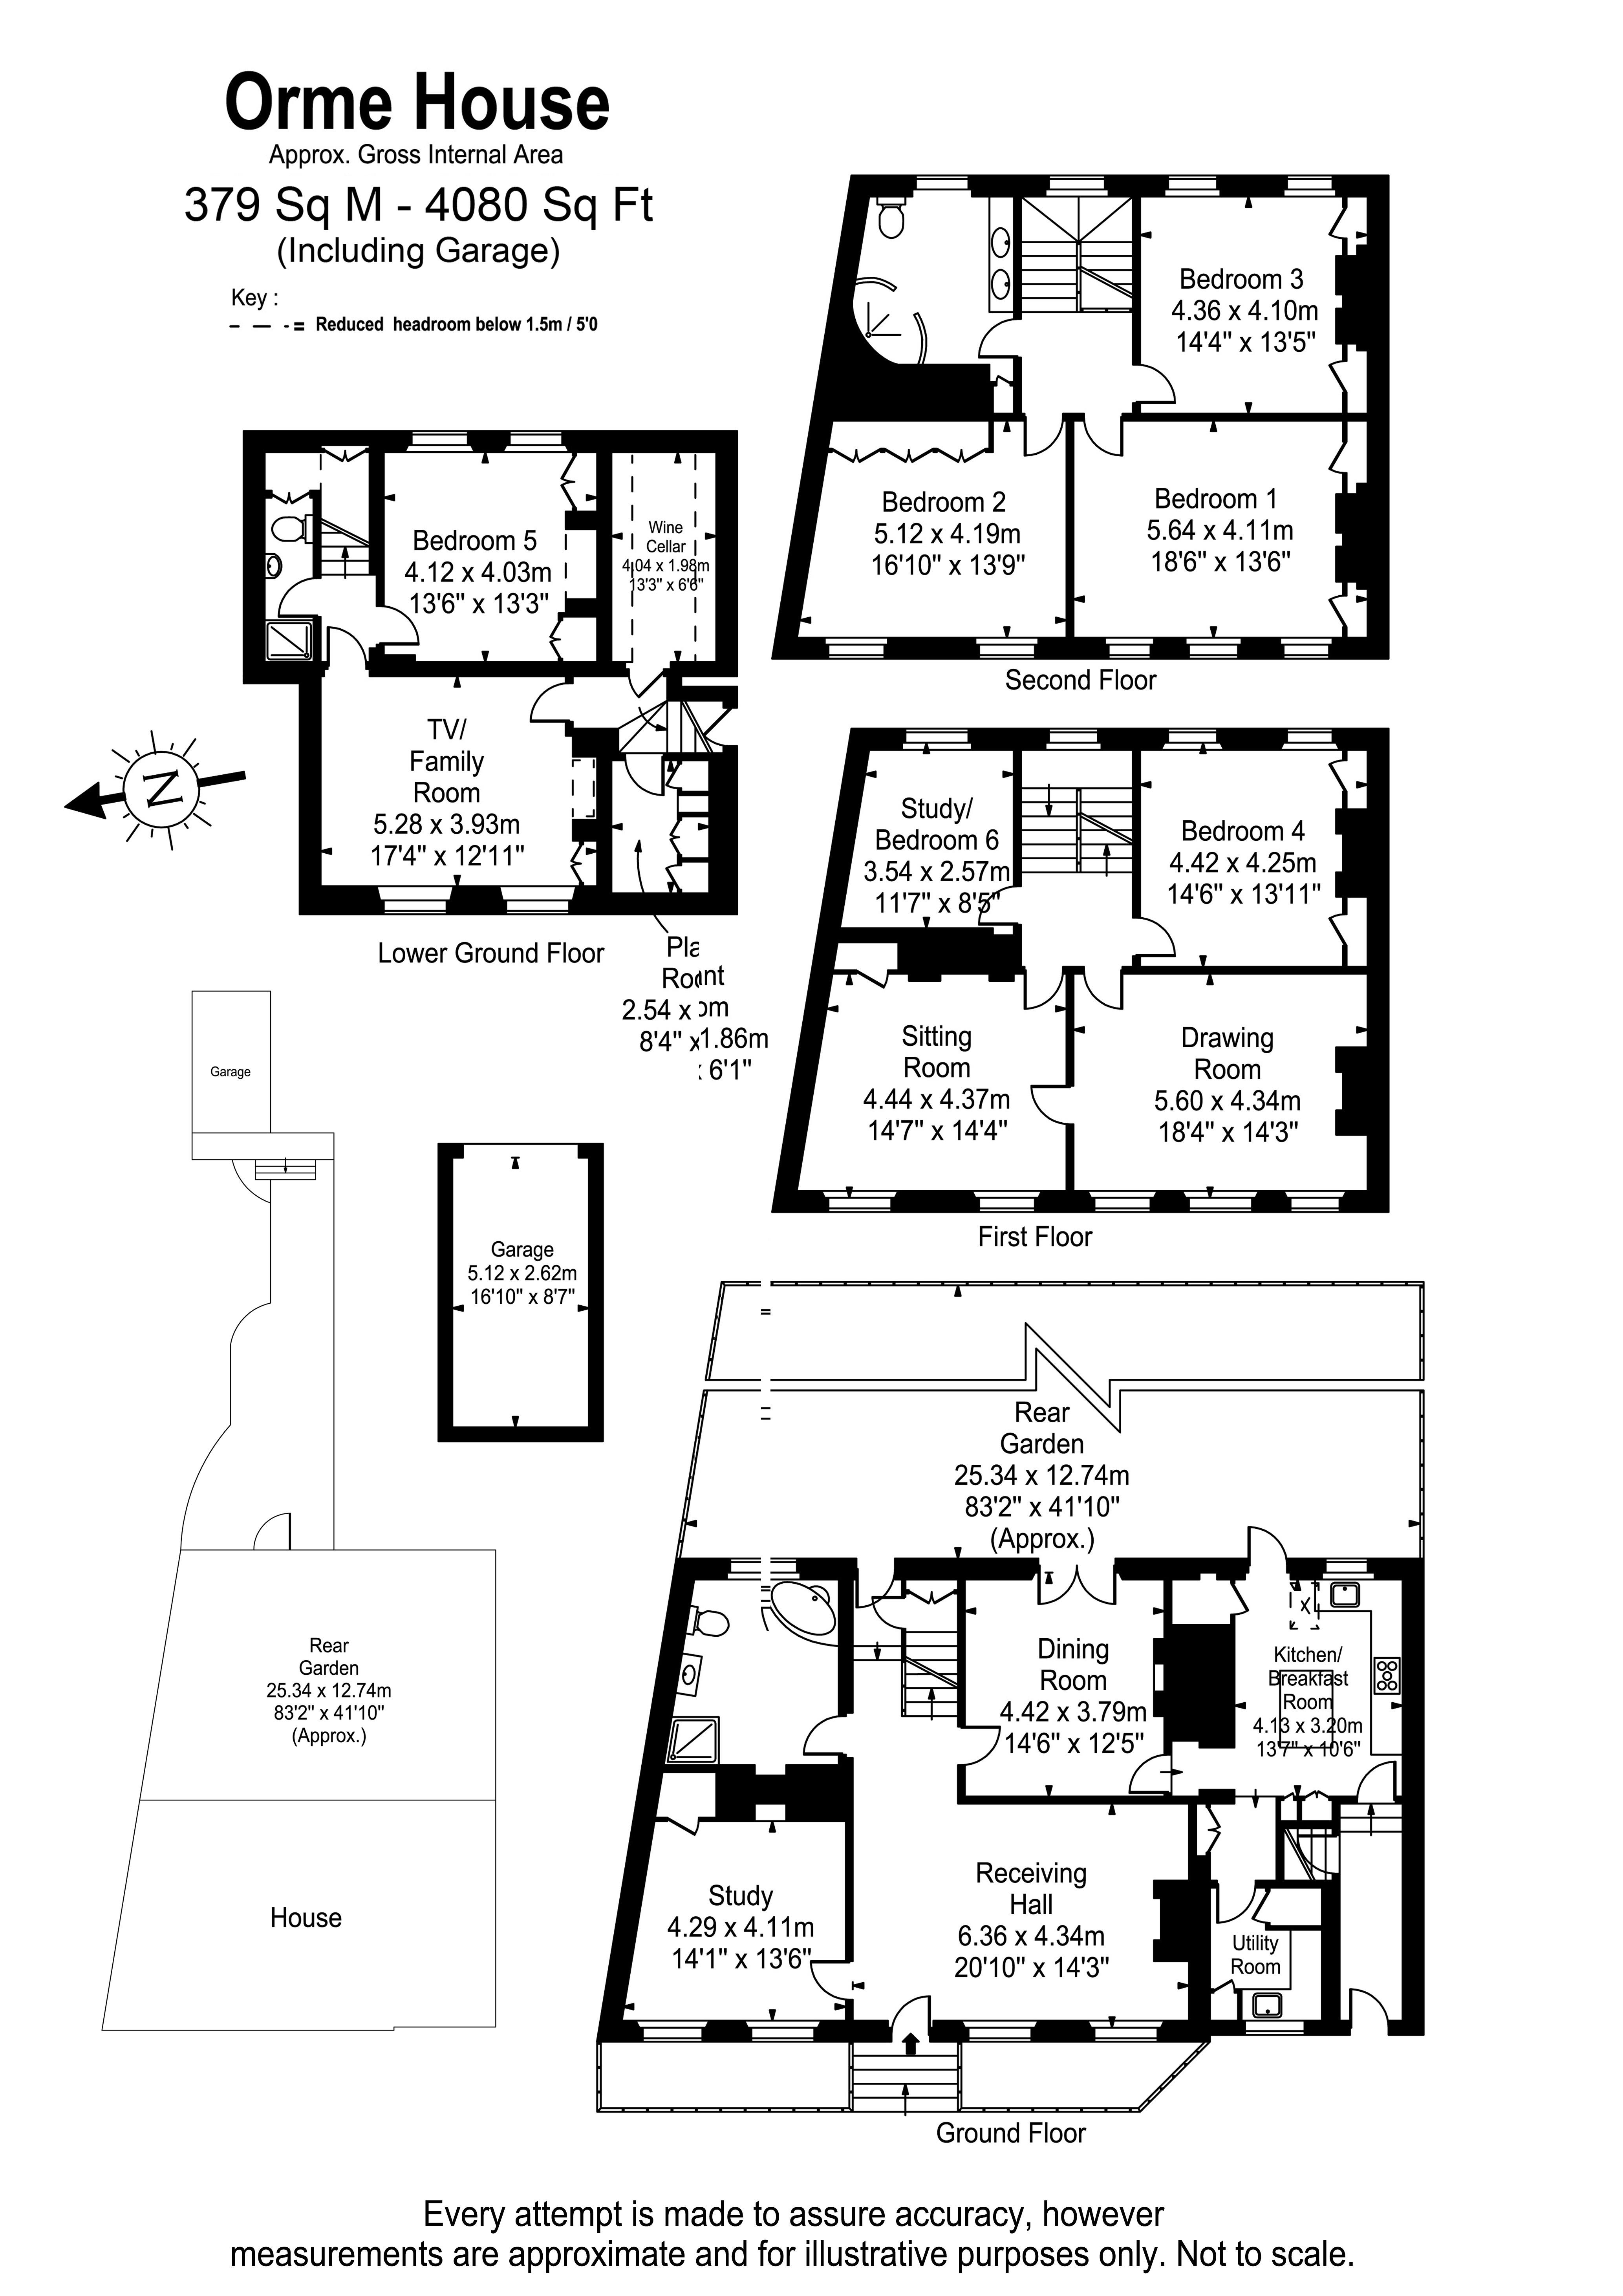 Floorplans For Orme House, Hampton